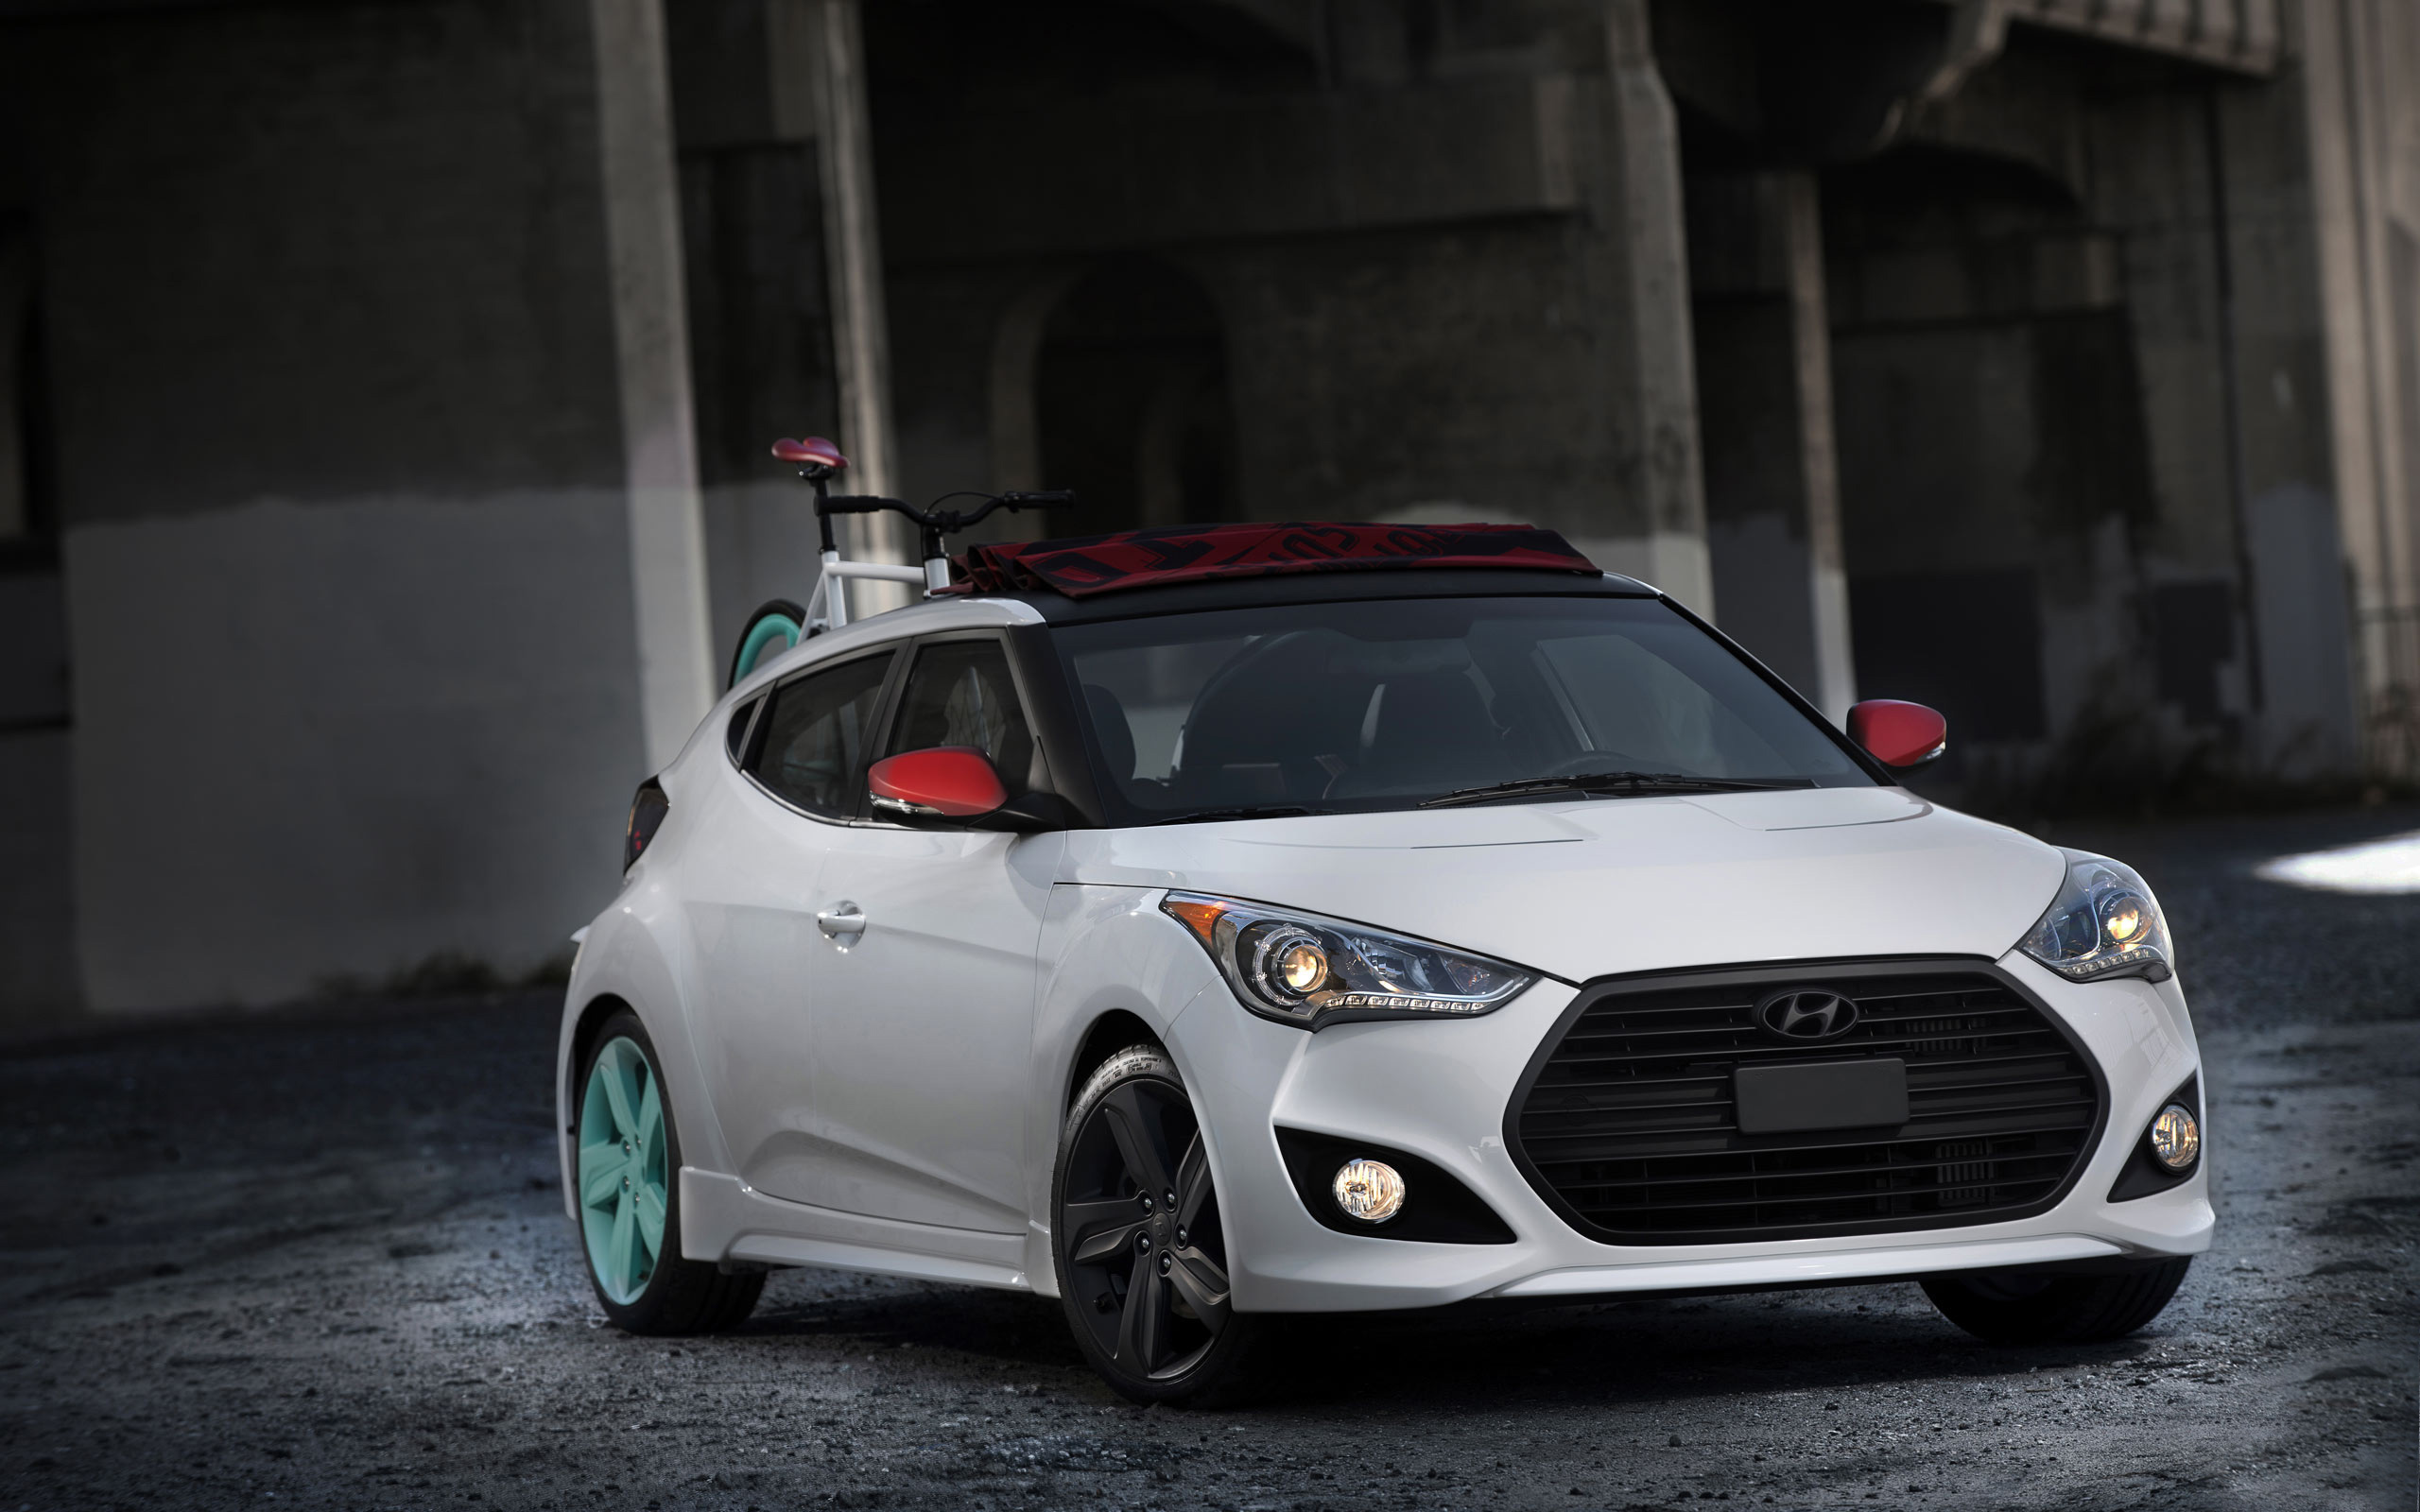 edition turbo wallpaper cars hd wallpapers veloster hyundai